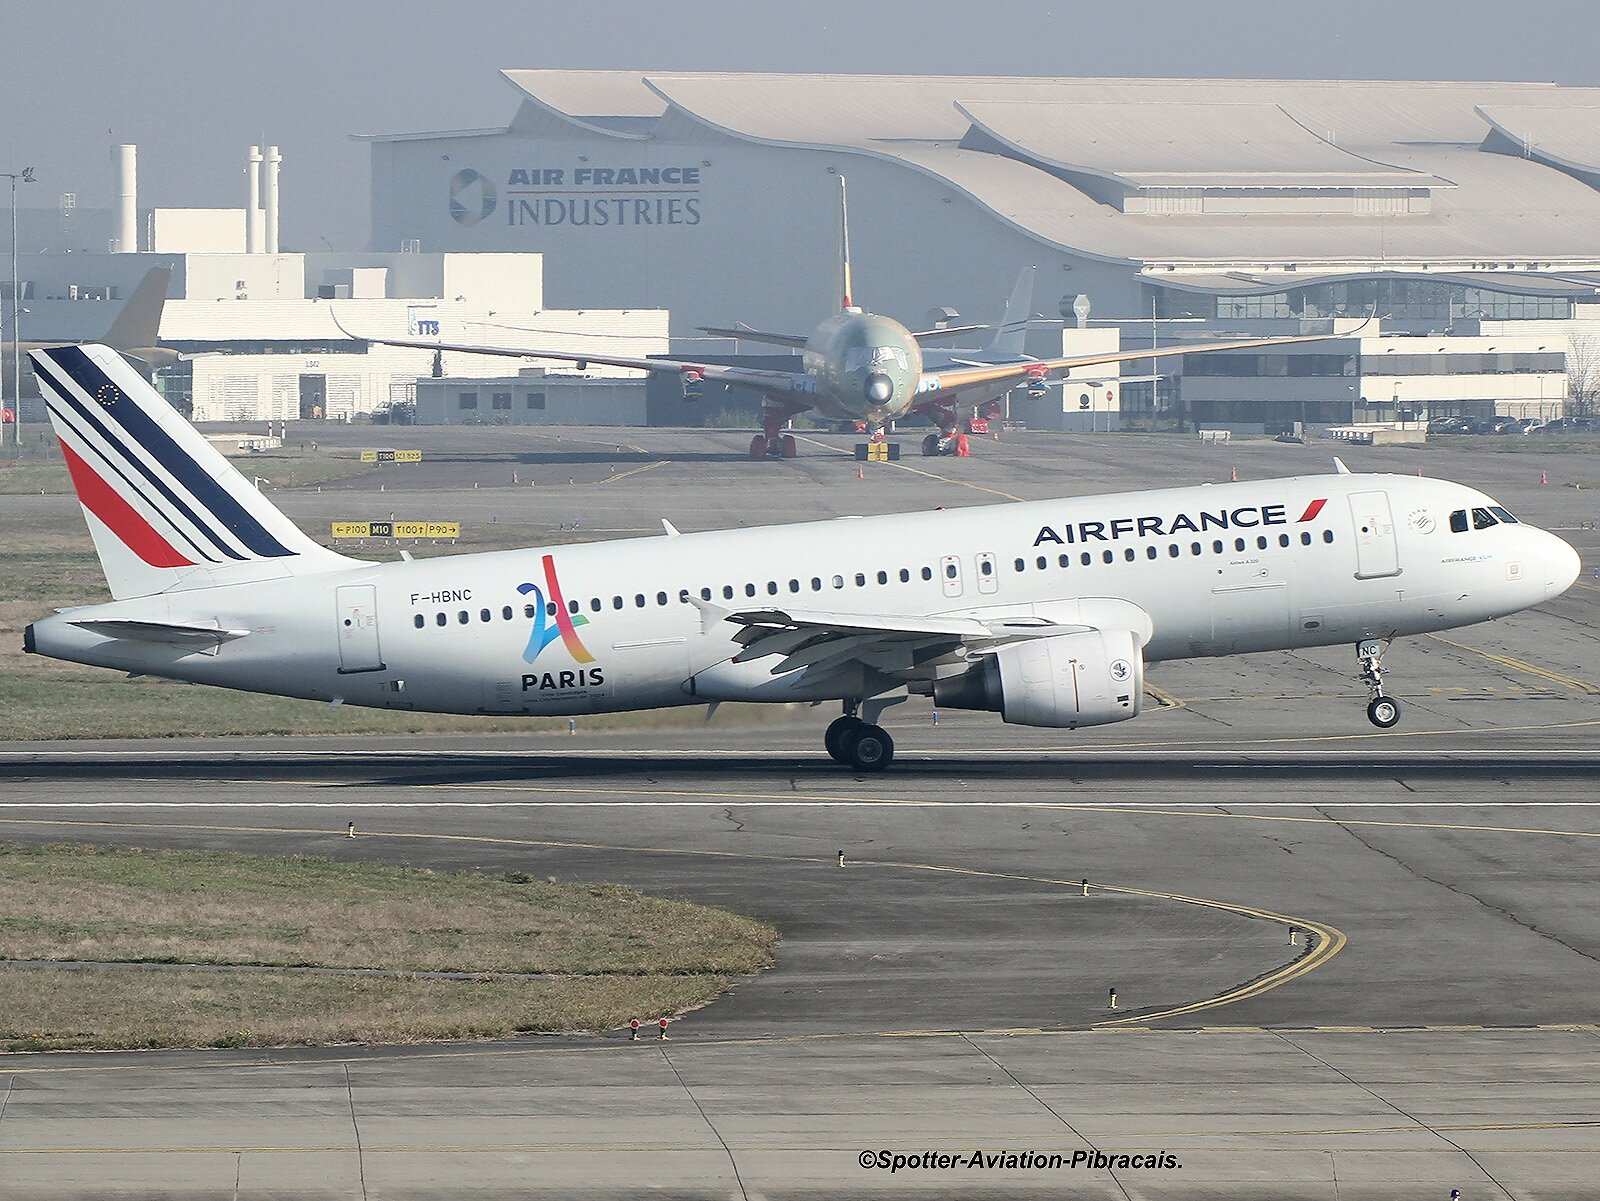 A roport toulouse blagnac tls lfbo air france airbus a320 214 f hbnc msn 4601 livery - Comptoir air france toulouse ...